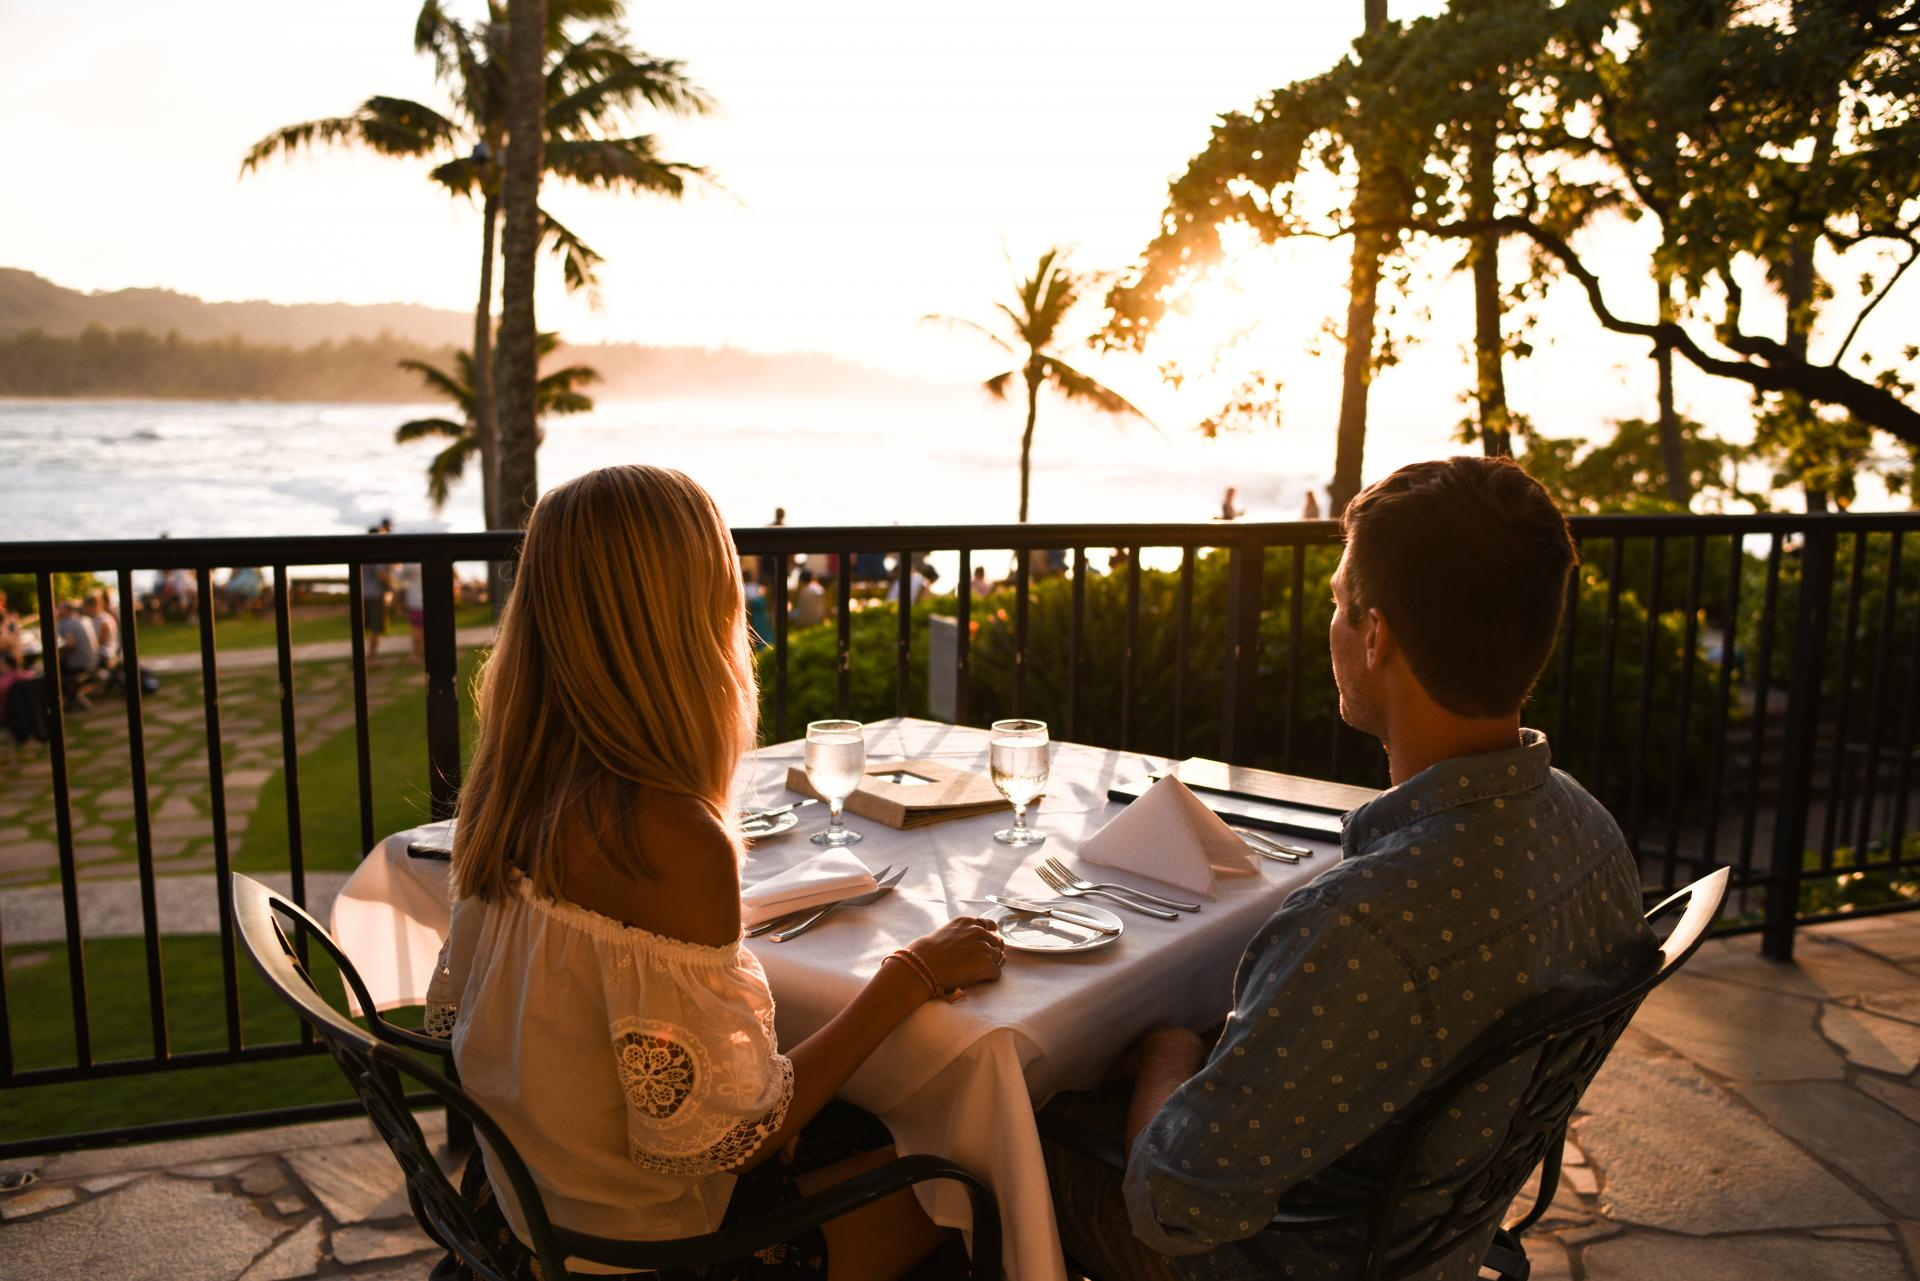 Dinner dates for two across the Hawaiian Islands